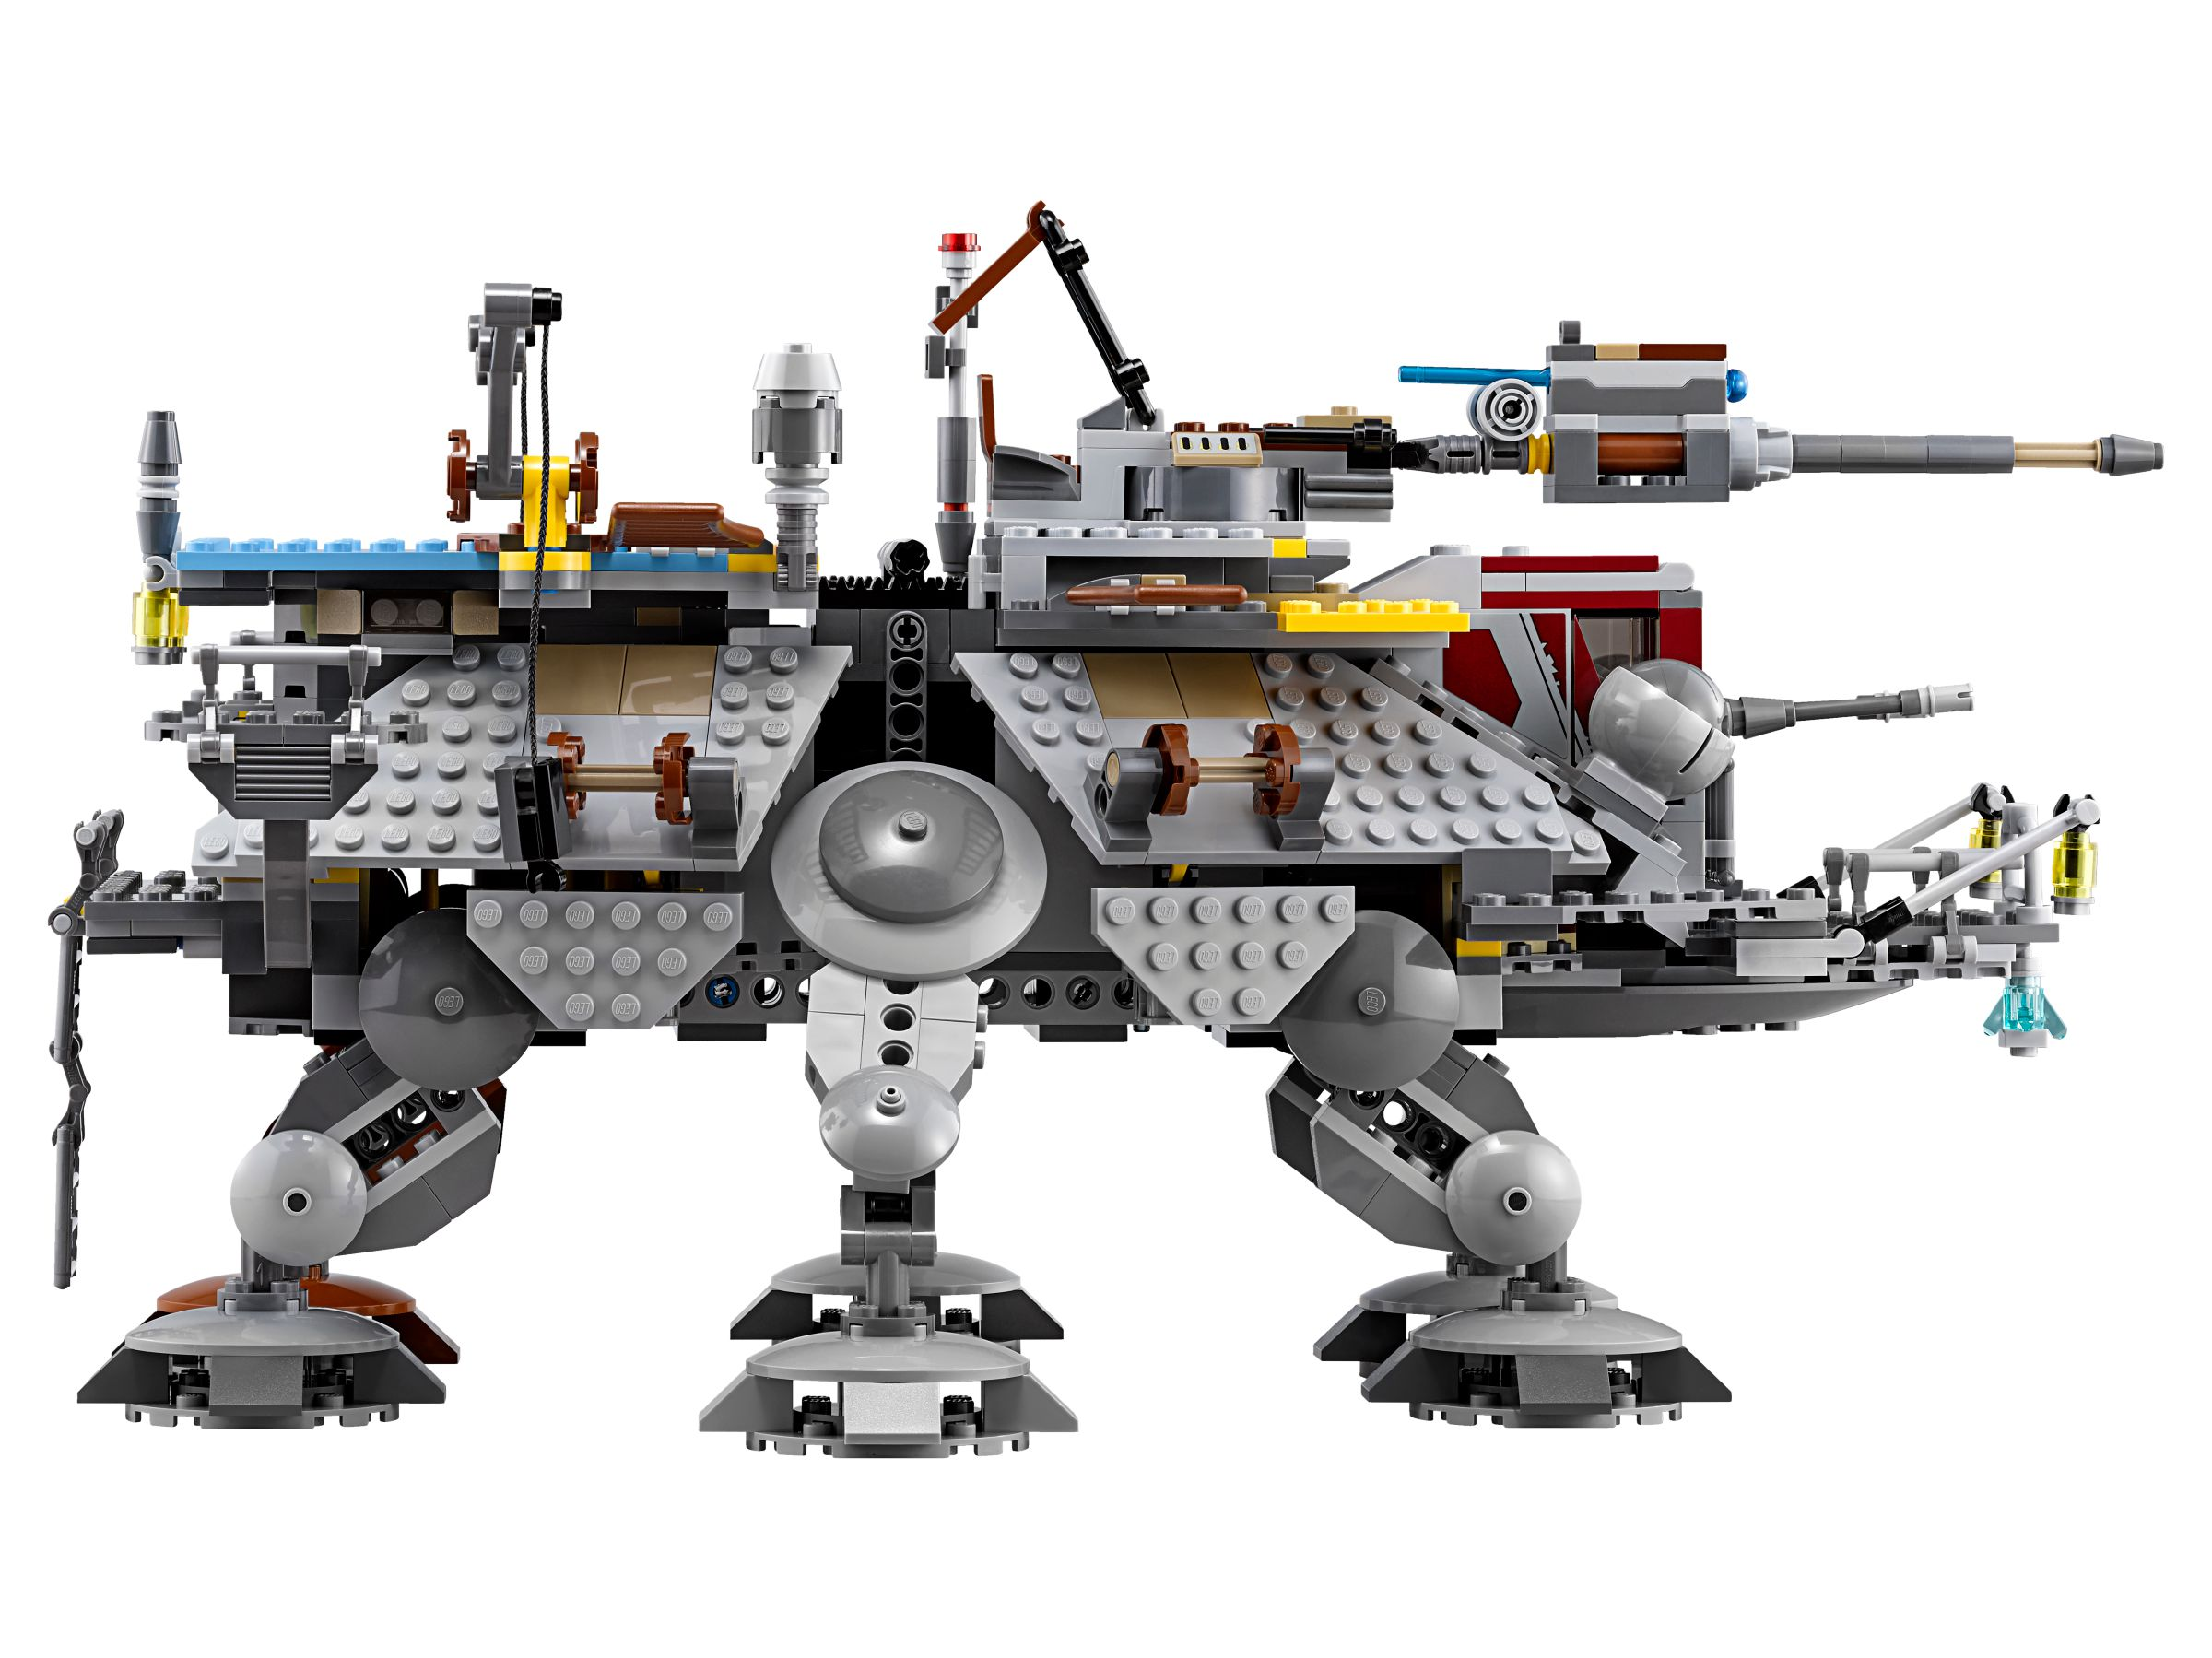 LEGO Star Wars 75157 Captain Rex's AT-TE™ LEGO_75157_alt3.jpg